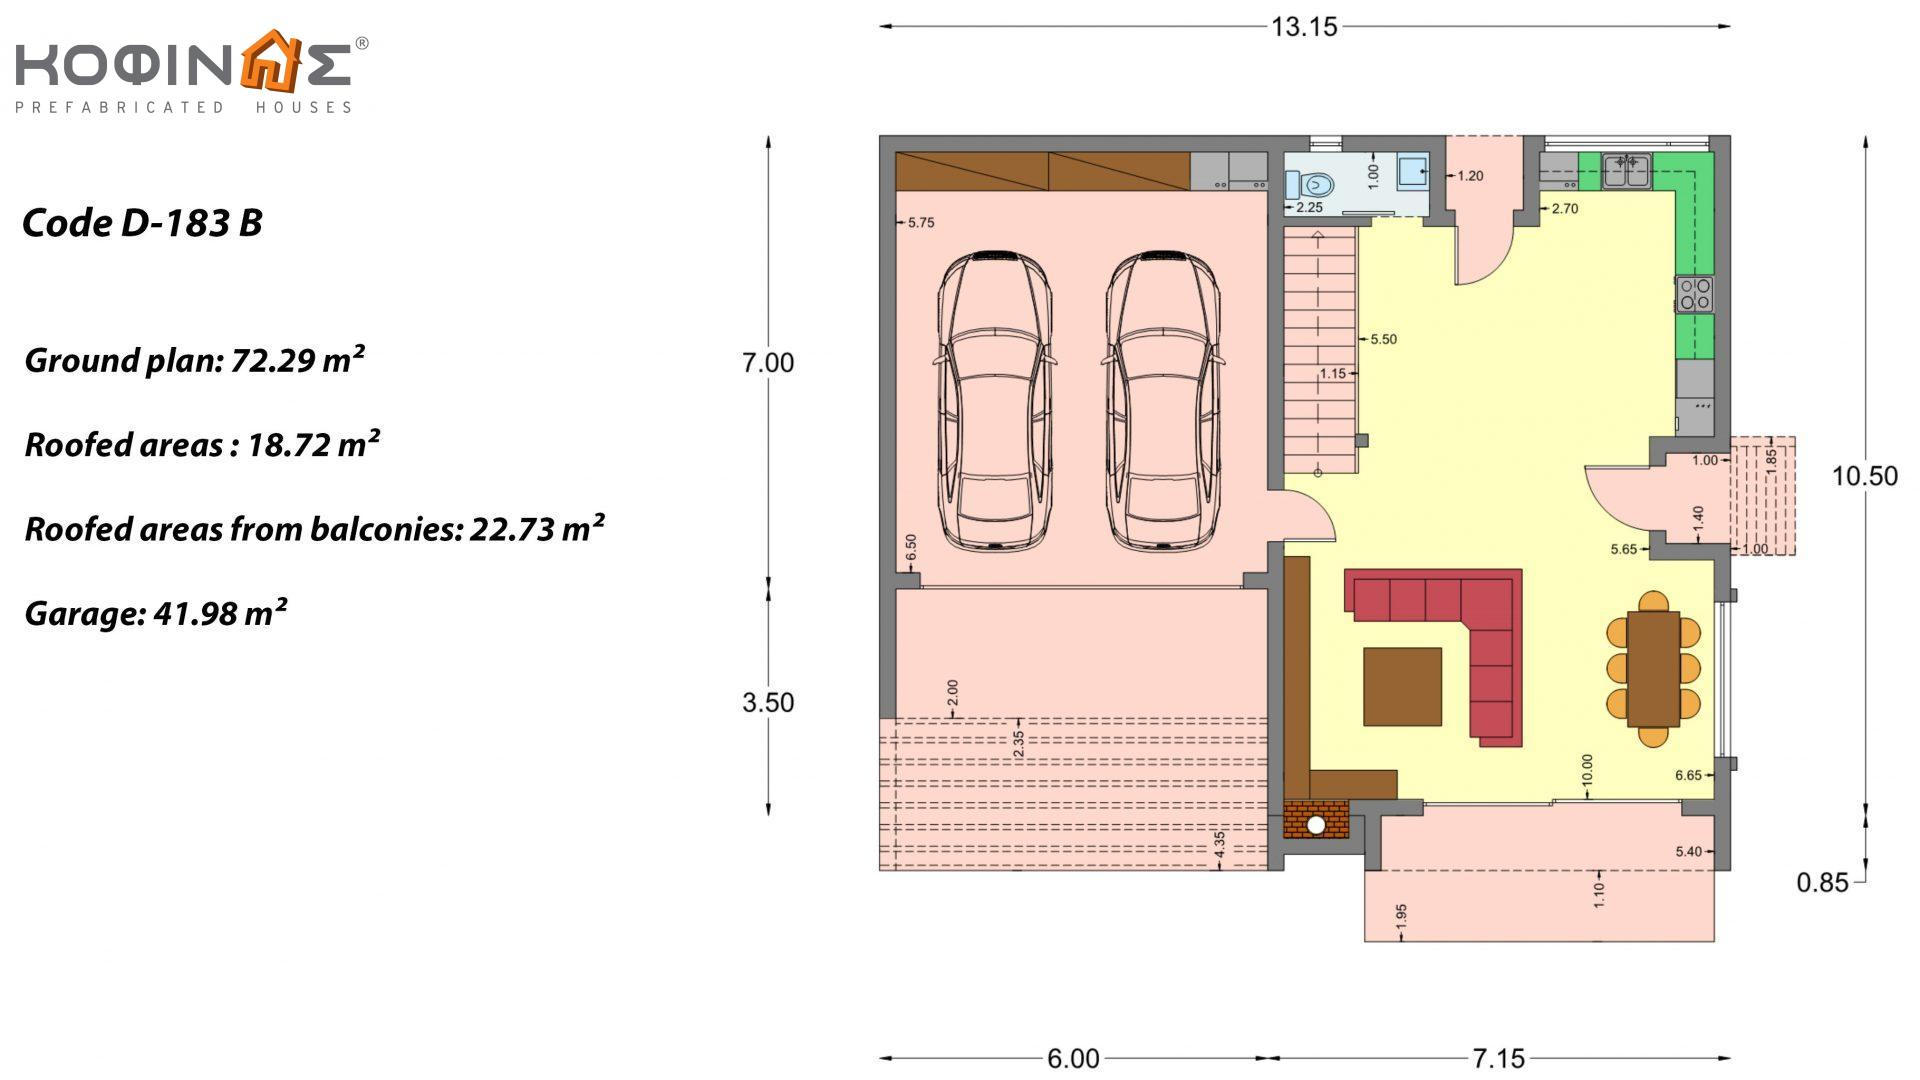 2-story house D 183B, total area 183.77 m²., +garage 41.98 m²(= 225,75 m²), covered areas 59.80 m², and balconies 28.09 m²